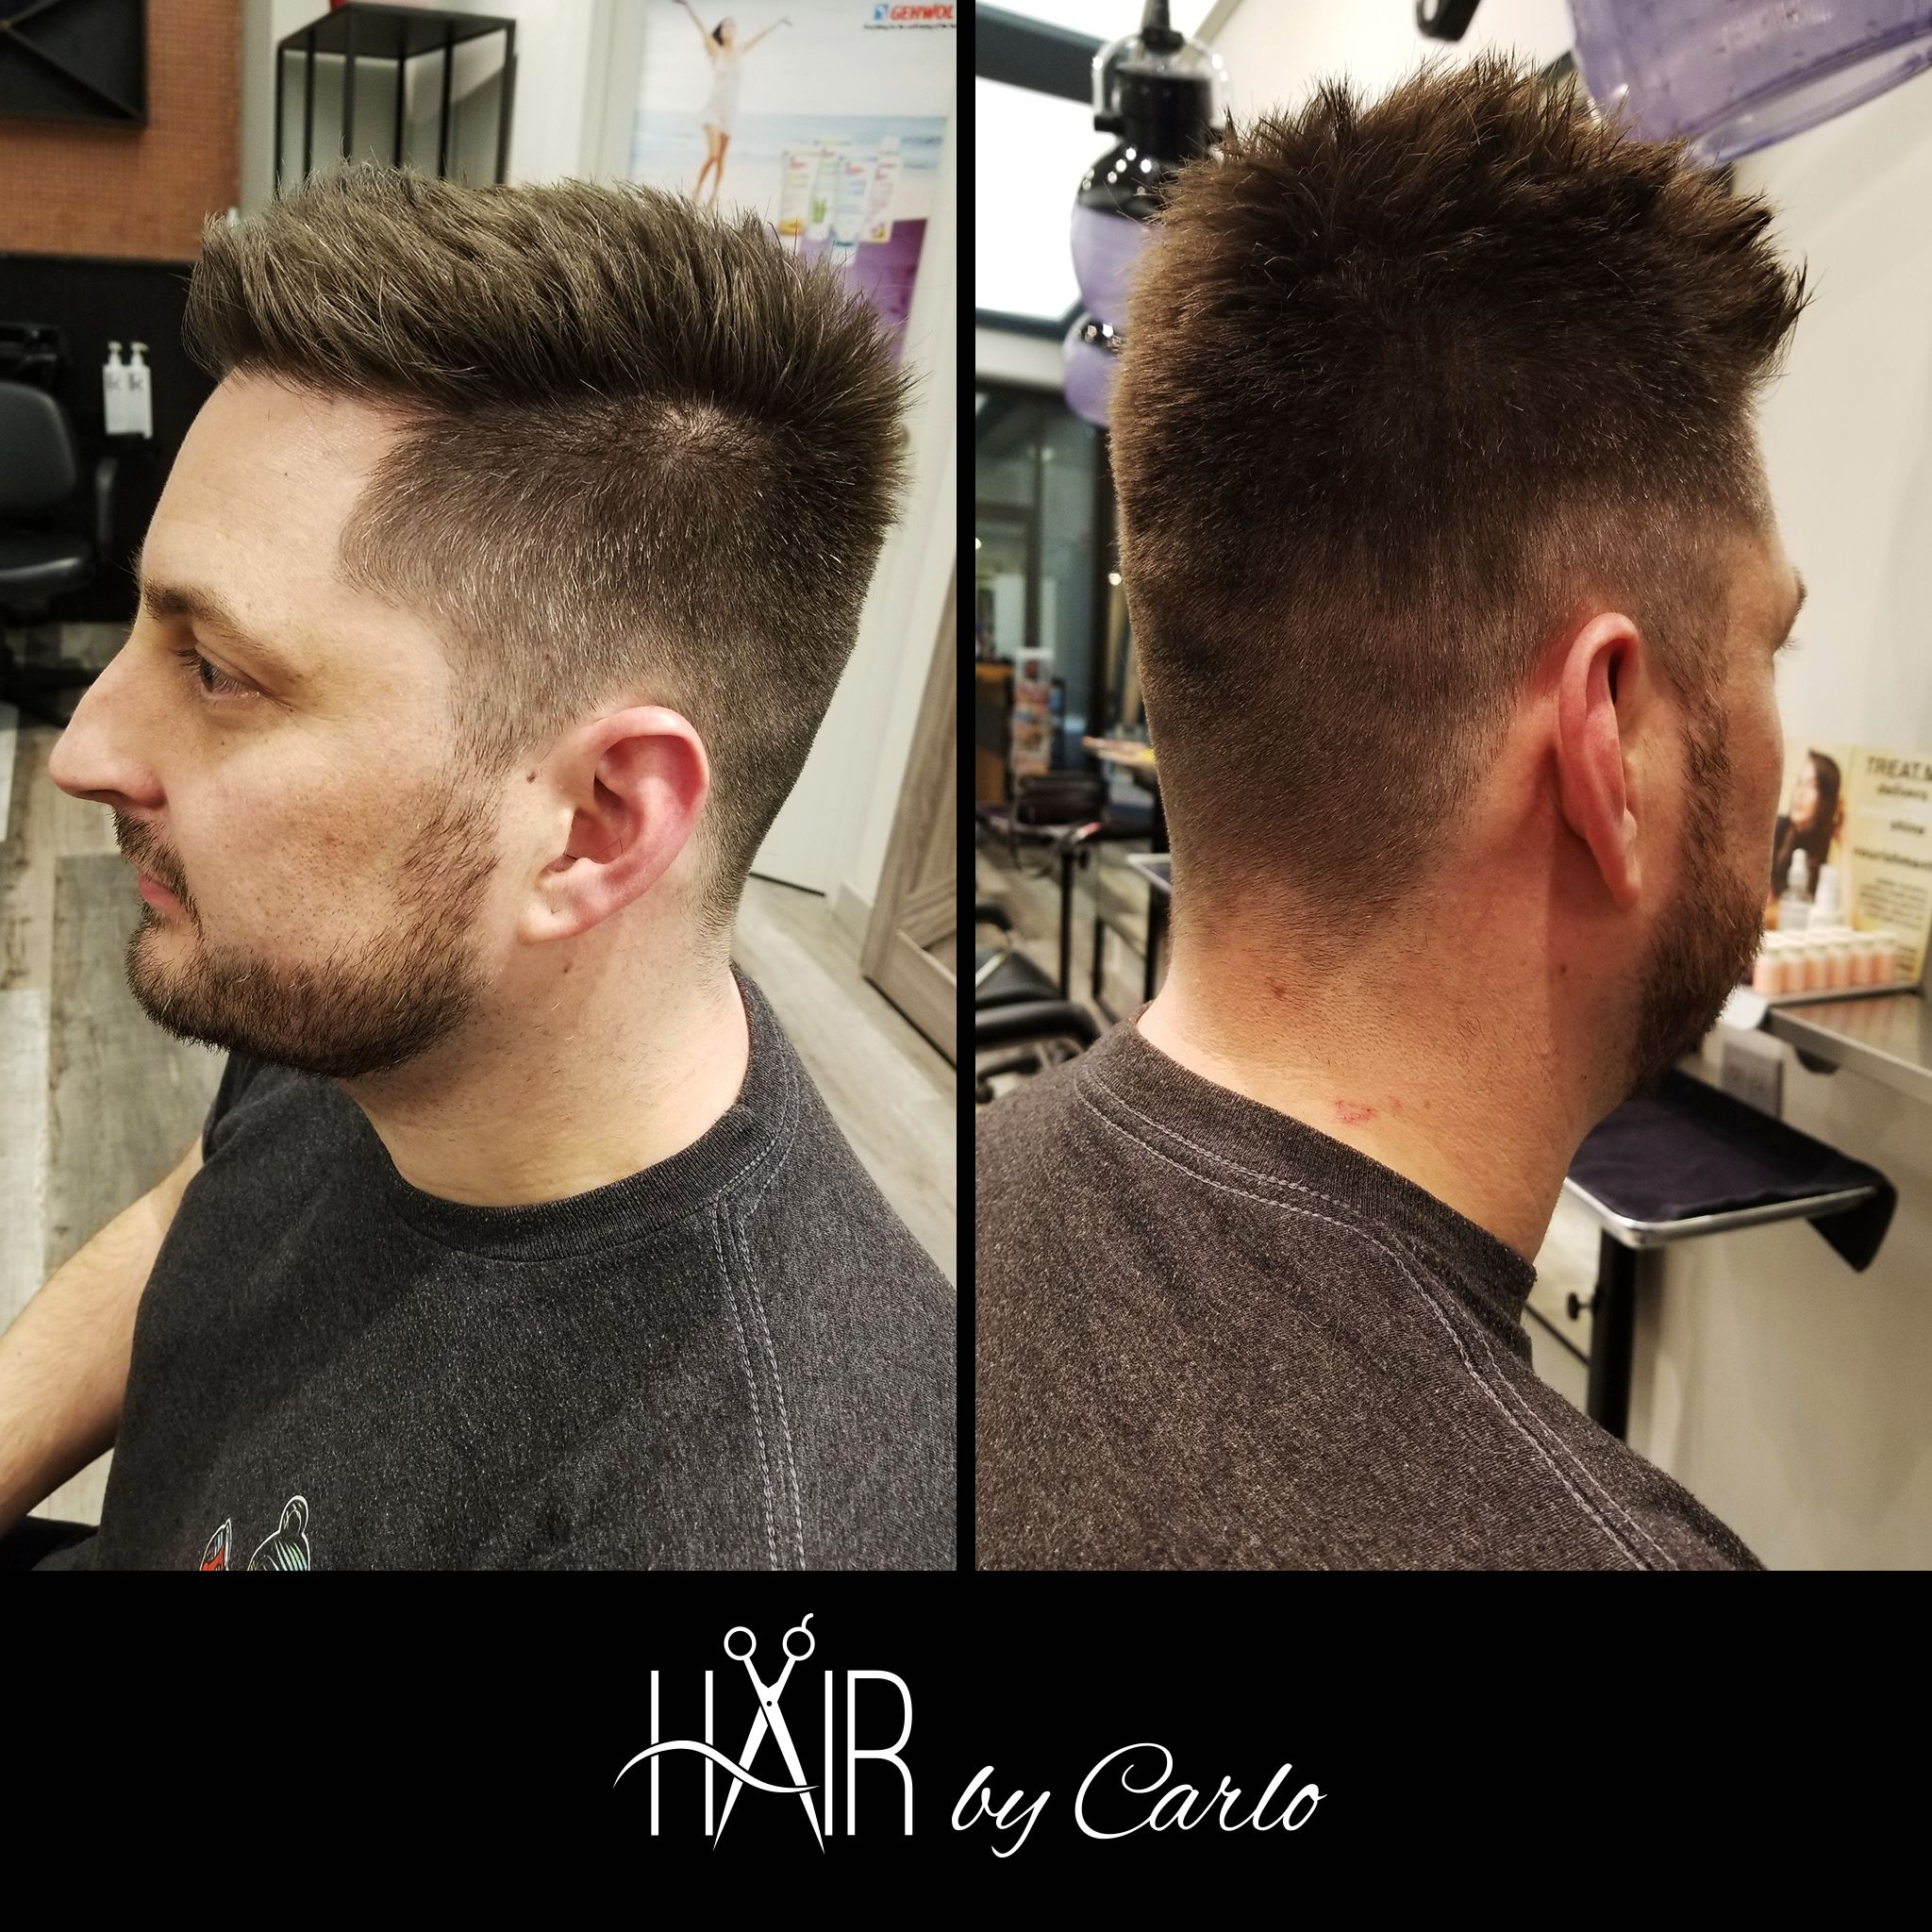 Pin On Hair By Carlo